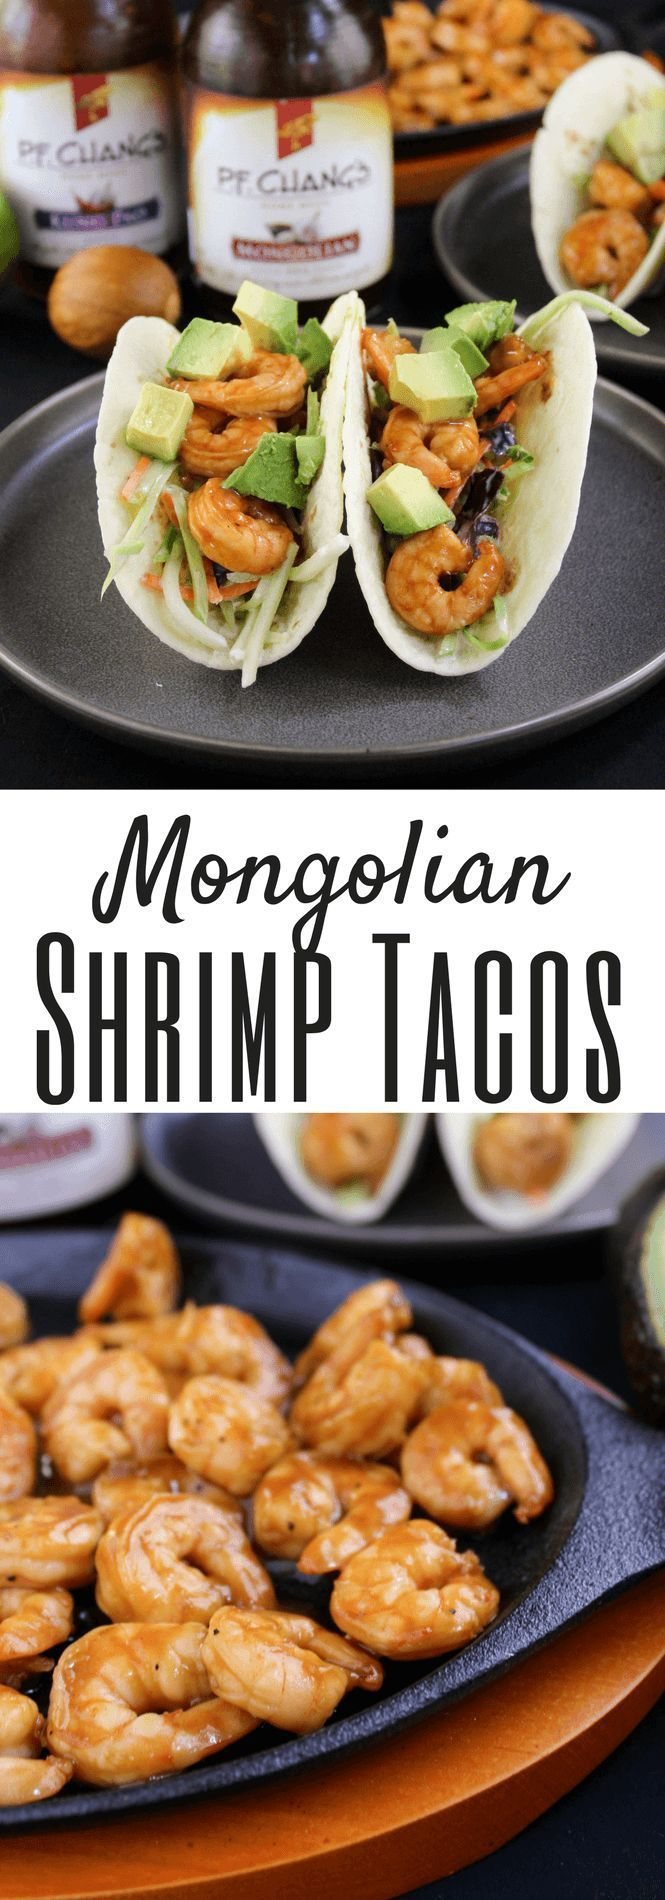 Mongolian Shrimp Tacos #ad #AuthenticMadeEasy #seafood #tacotuesday Quick Dinner Recipe